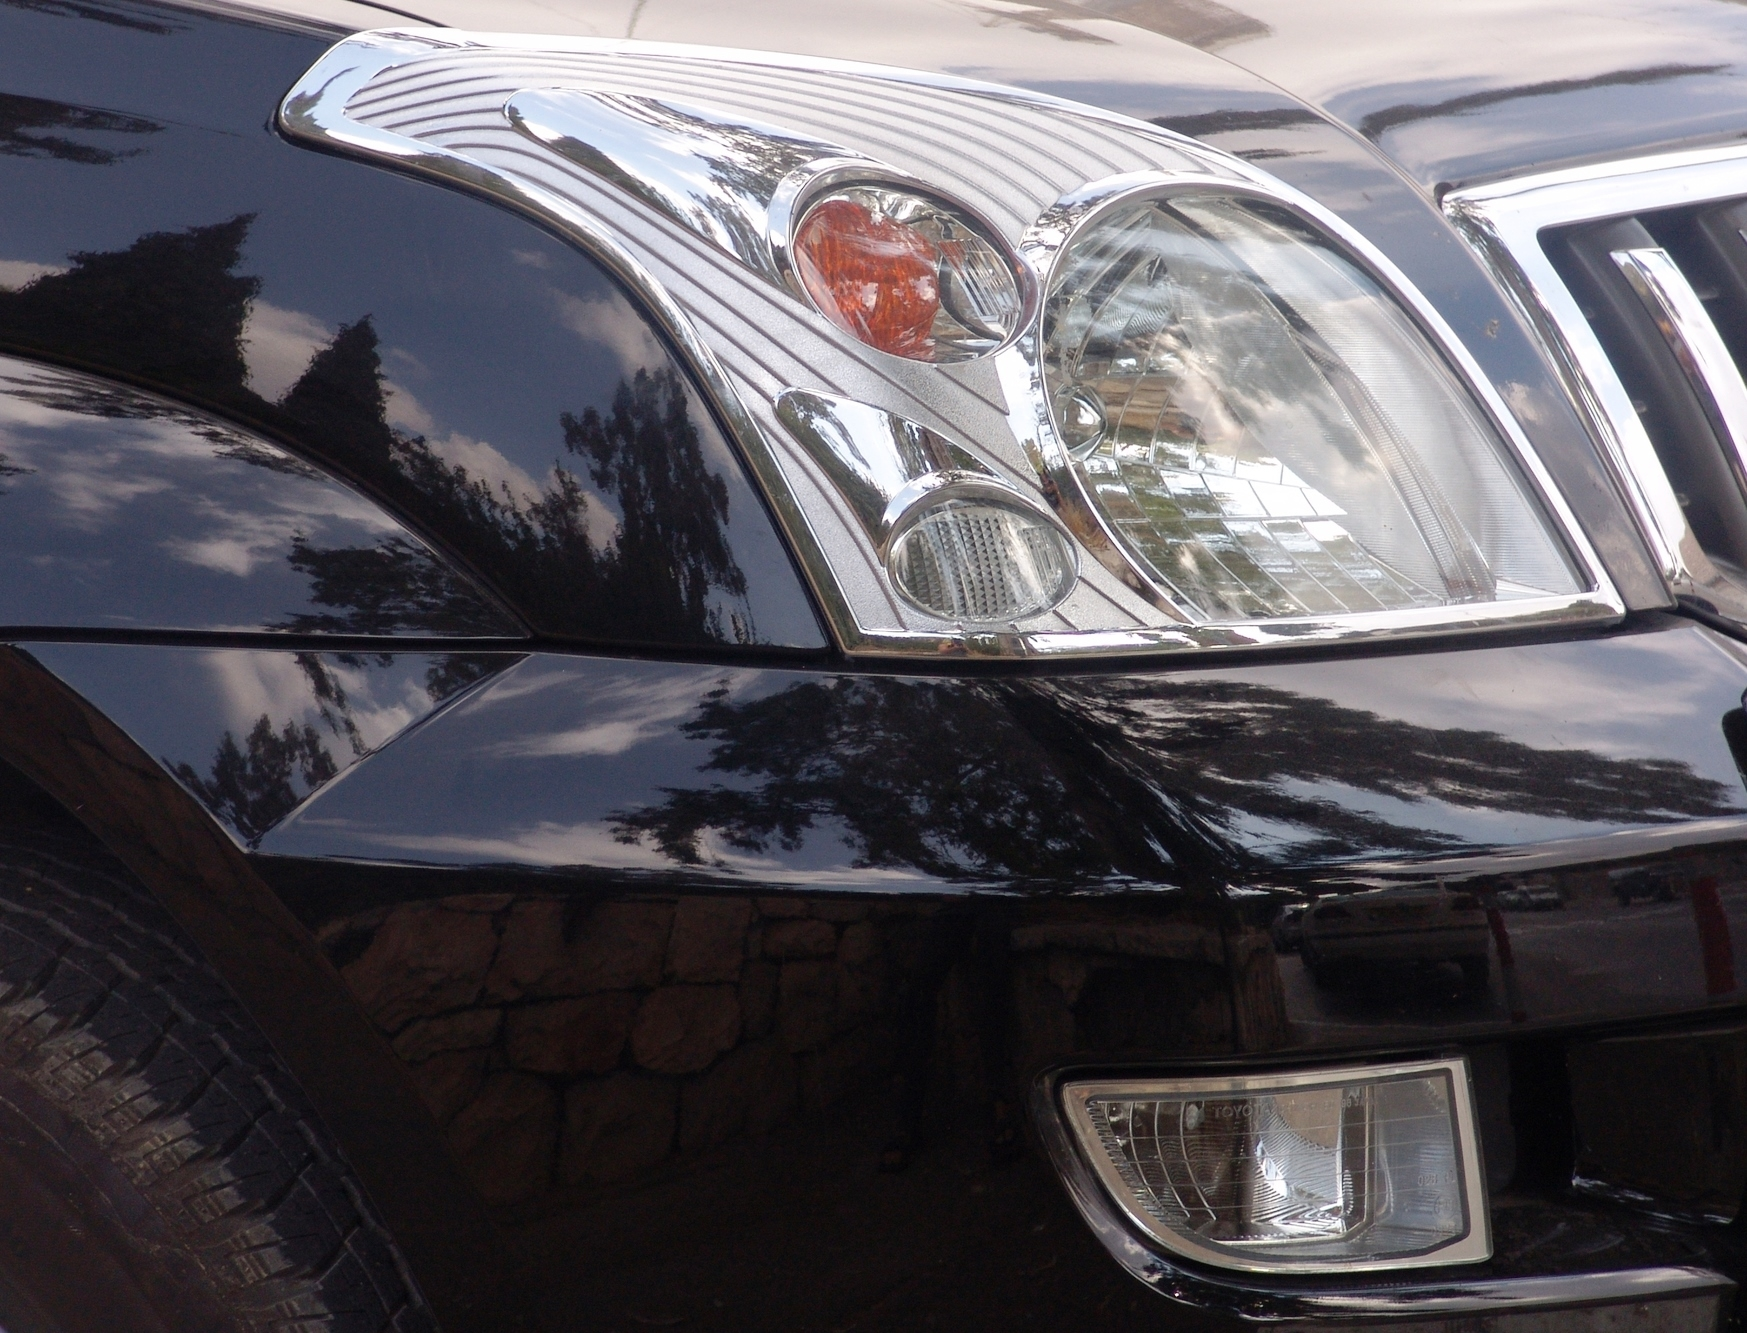 Hi-Tech Paint & Collision Ltd in Medicine Hat: Black car front end and headlight after repair